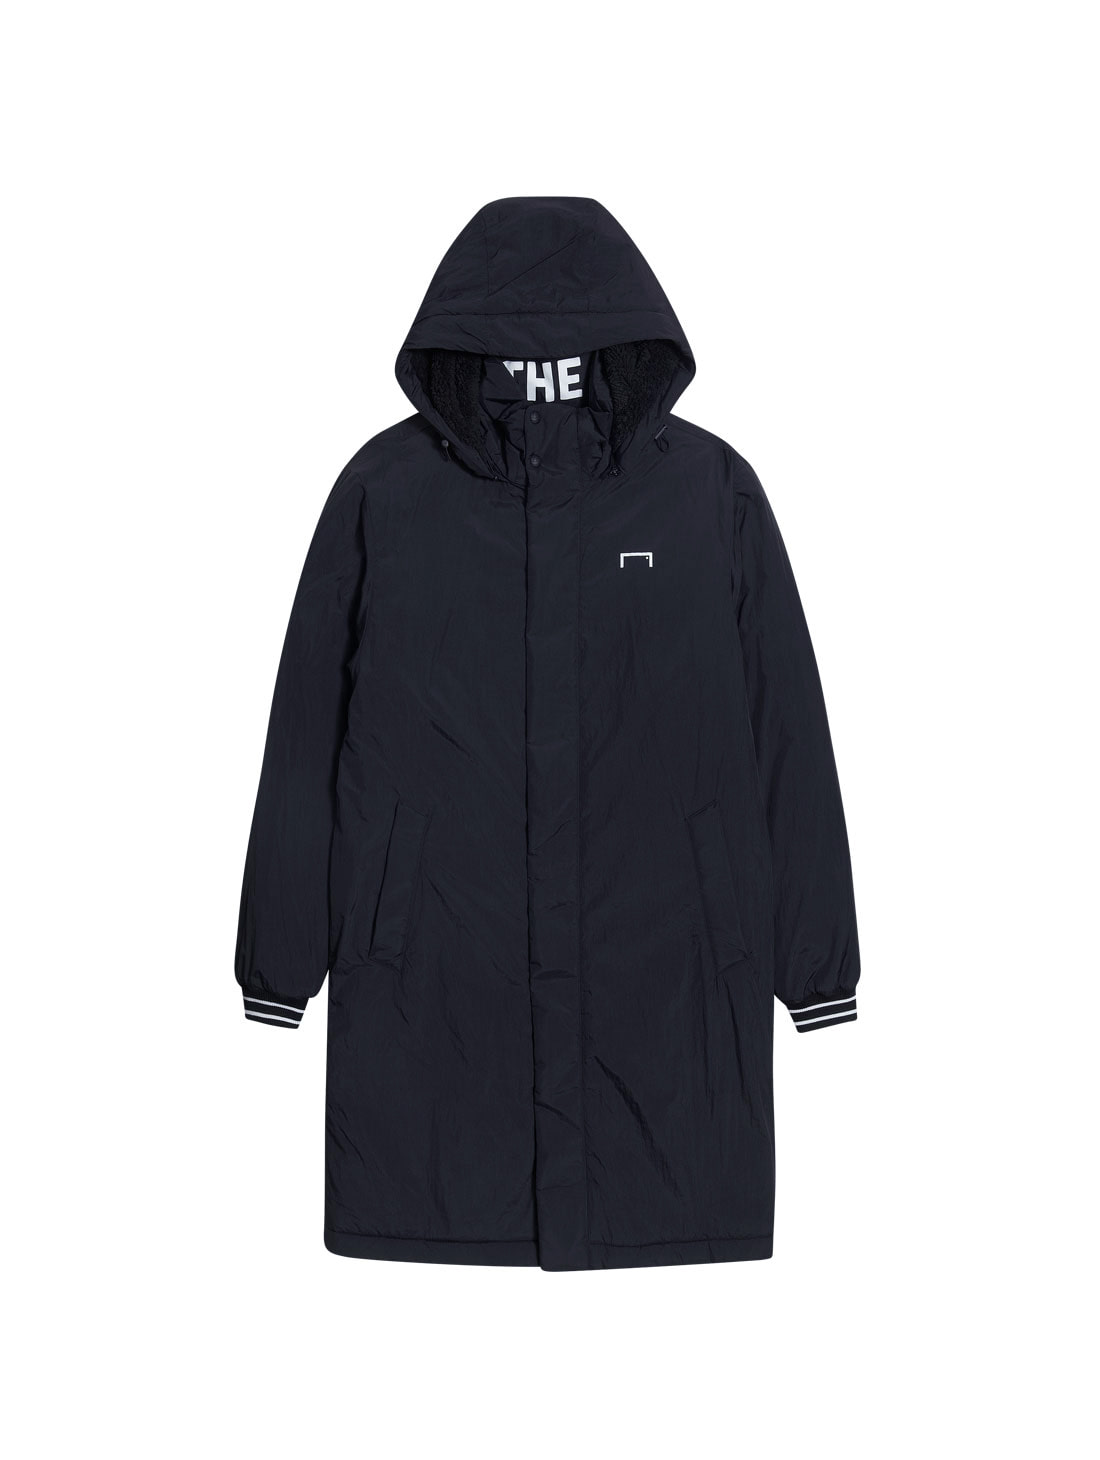 BIG LOGO LONG PARKA - BLACK[SPECIAL GIFT]